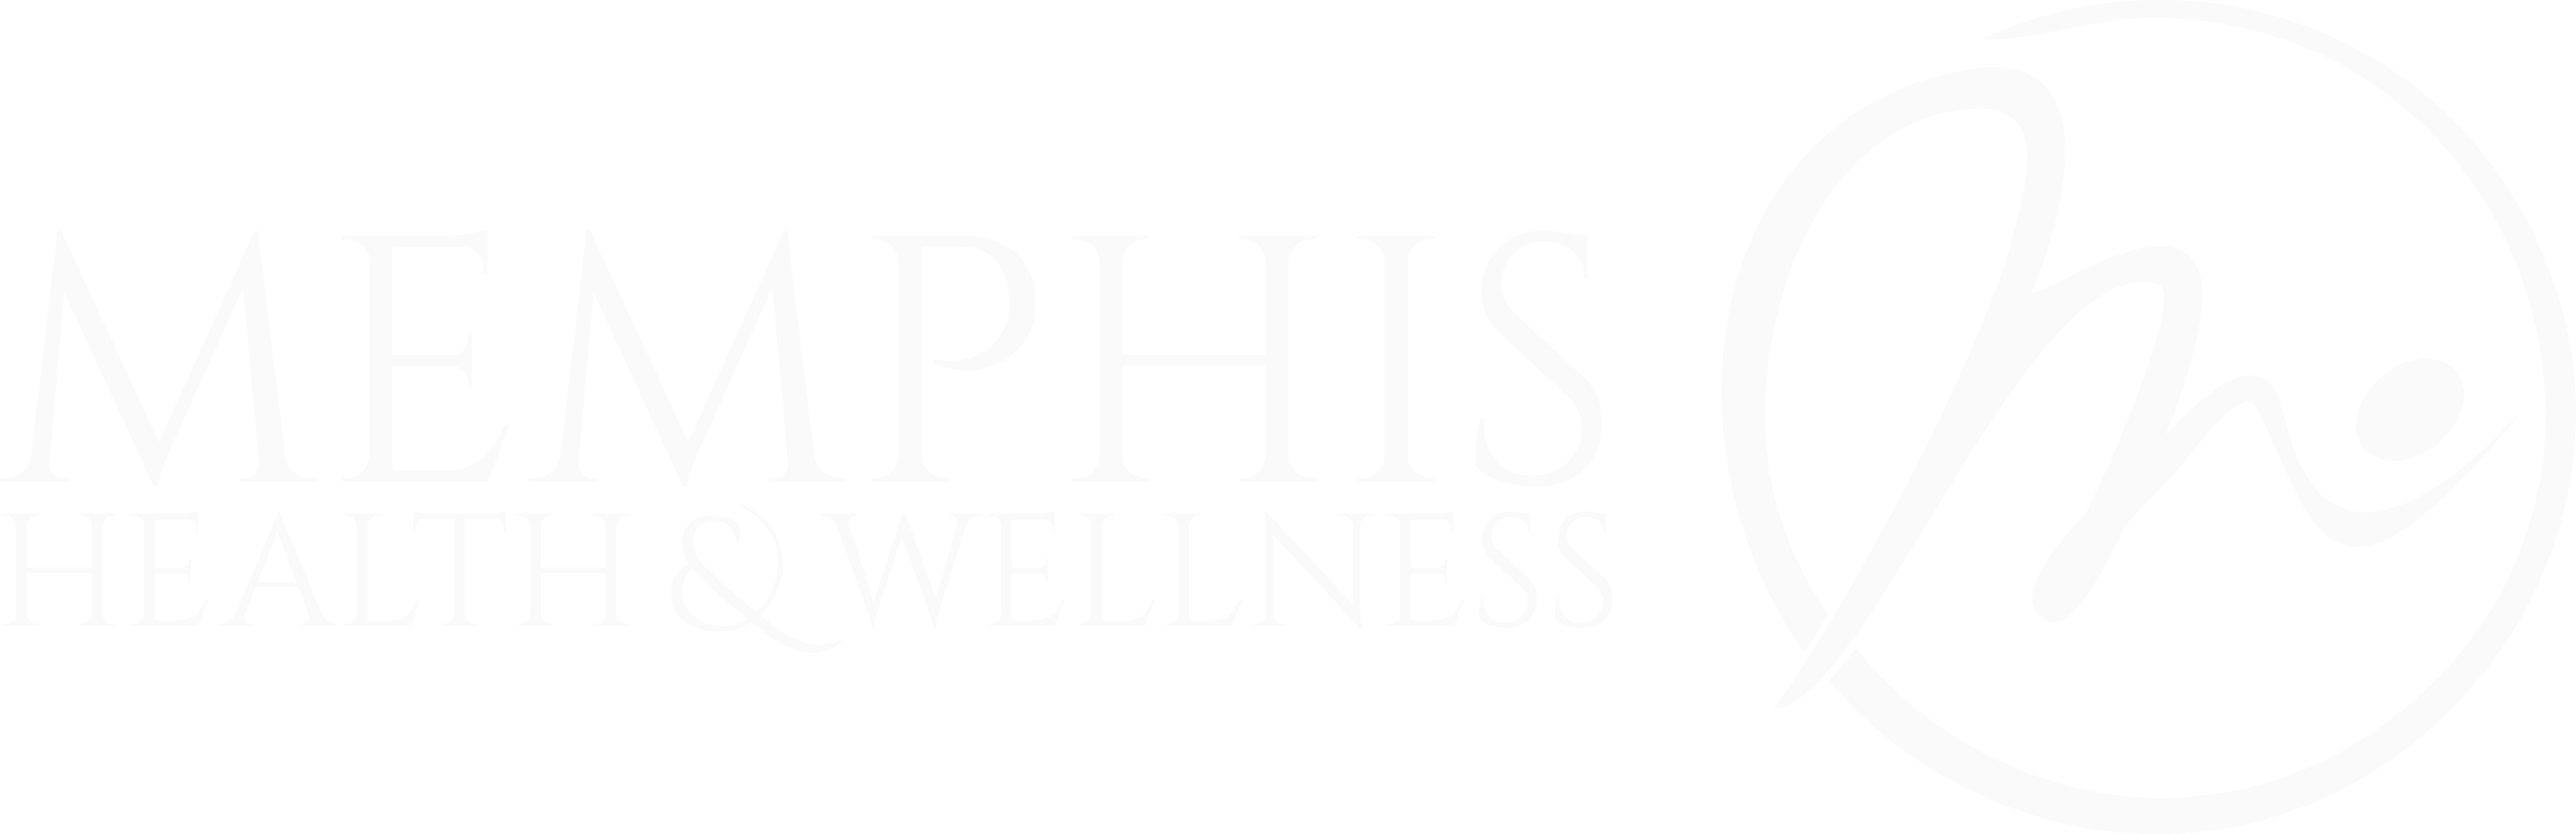 Memphis Health & Wellness